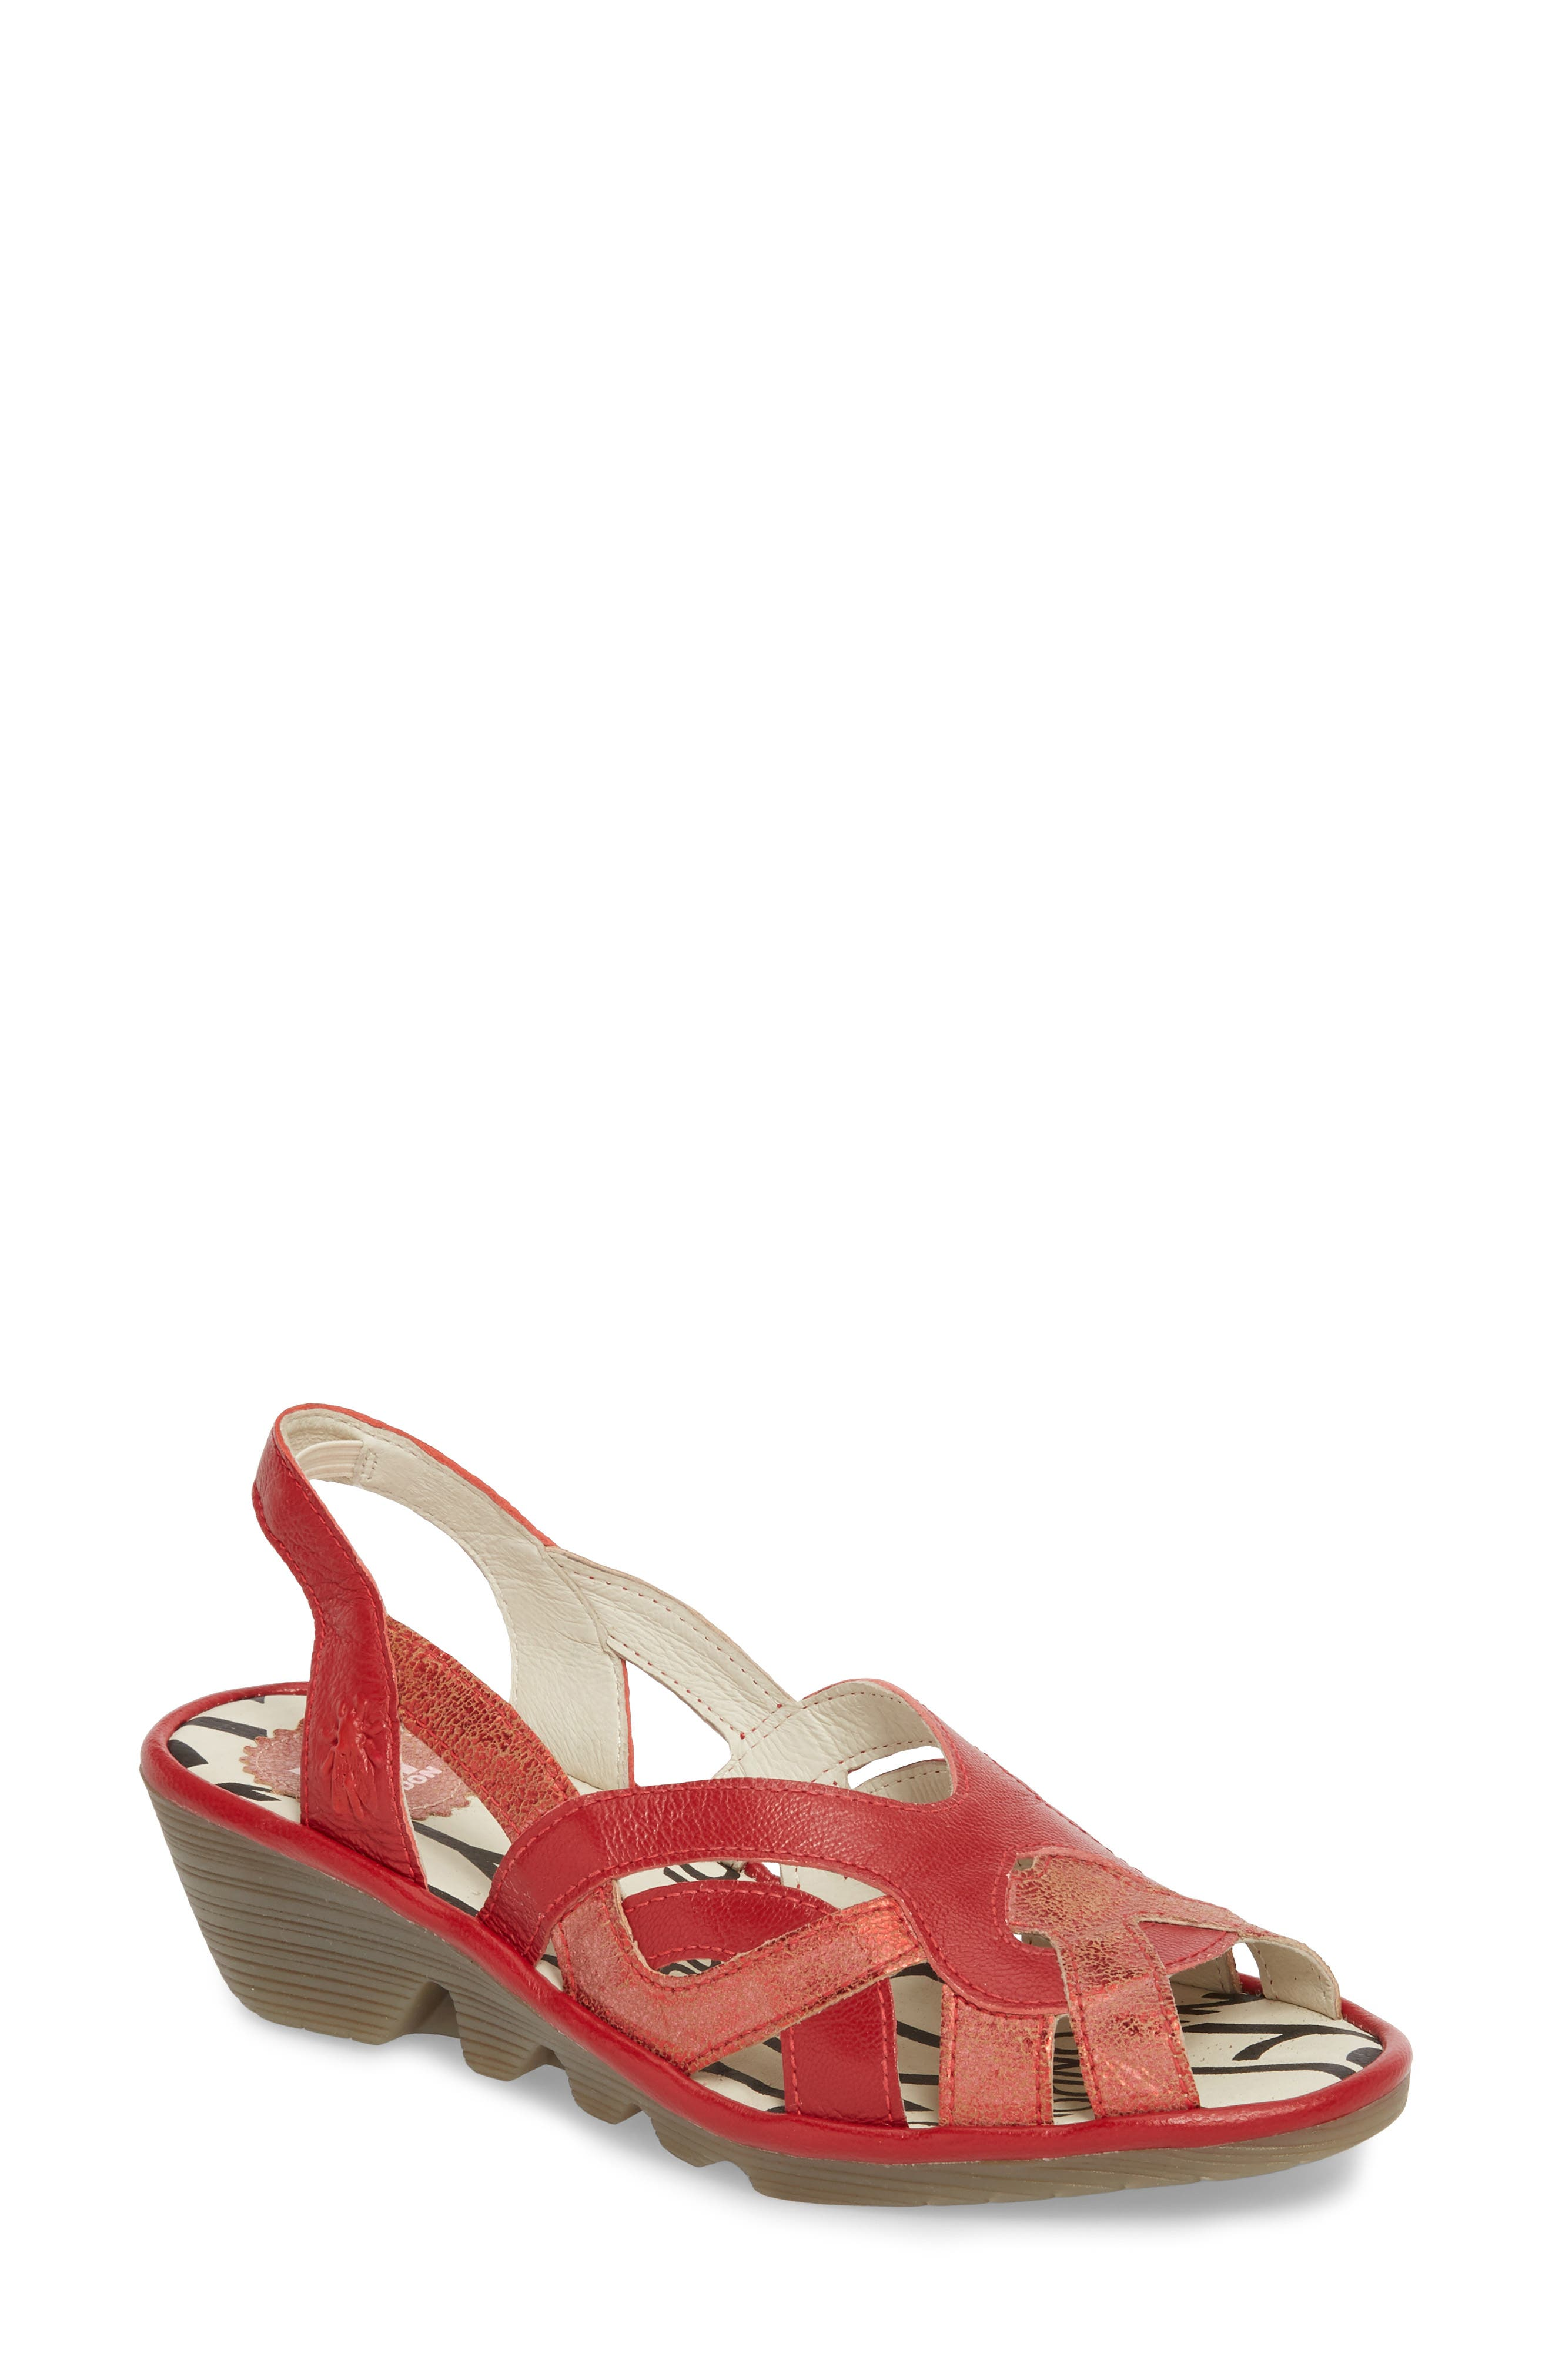 Pima Sandal,                         Main,                         color, Red Mix Leather